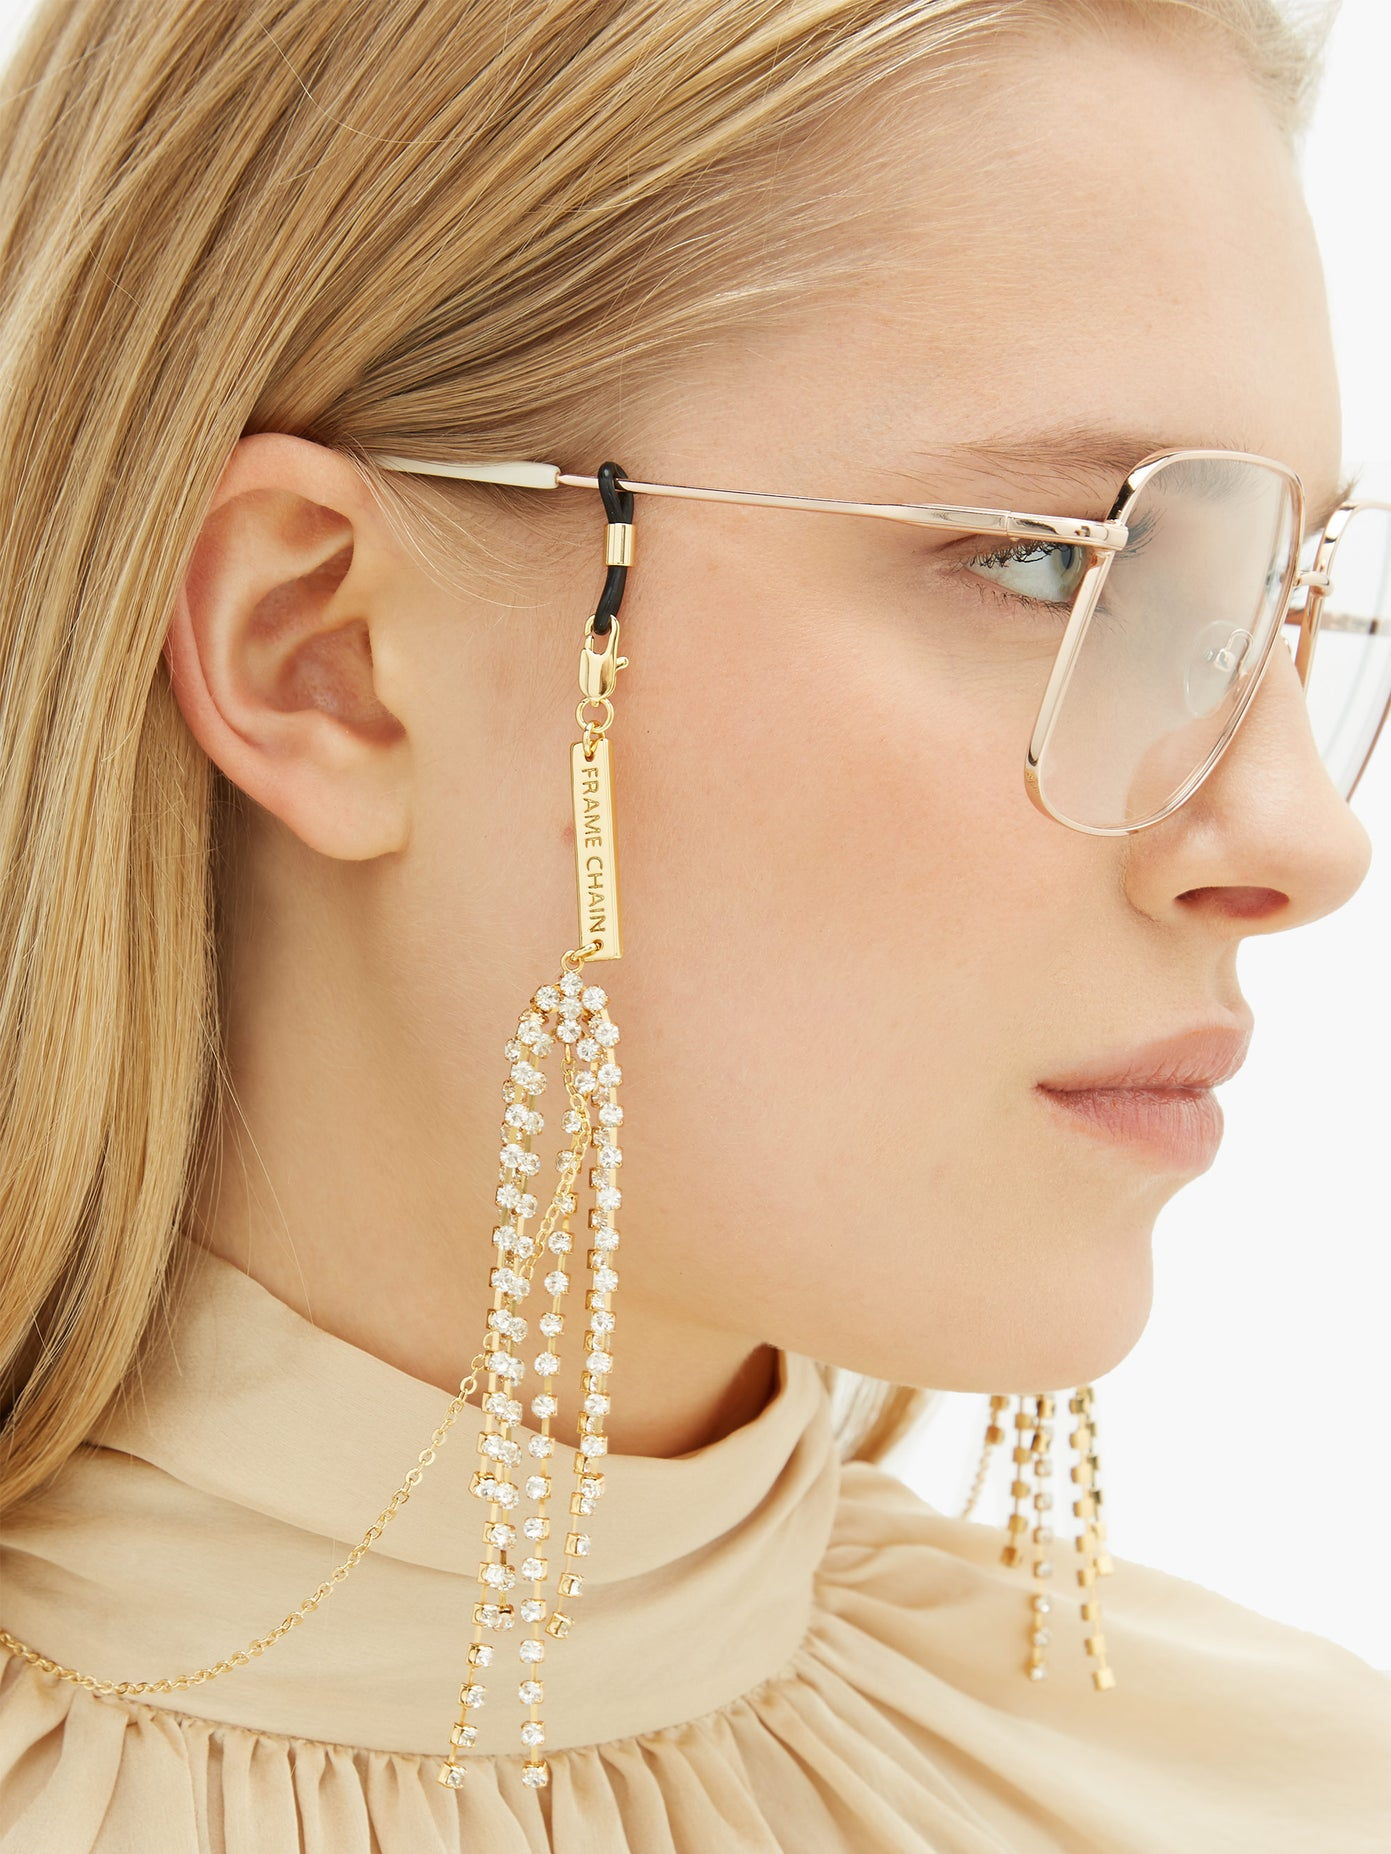 rhinestone glasses chain